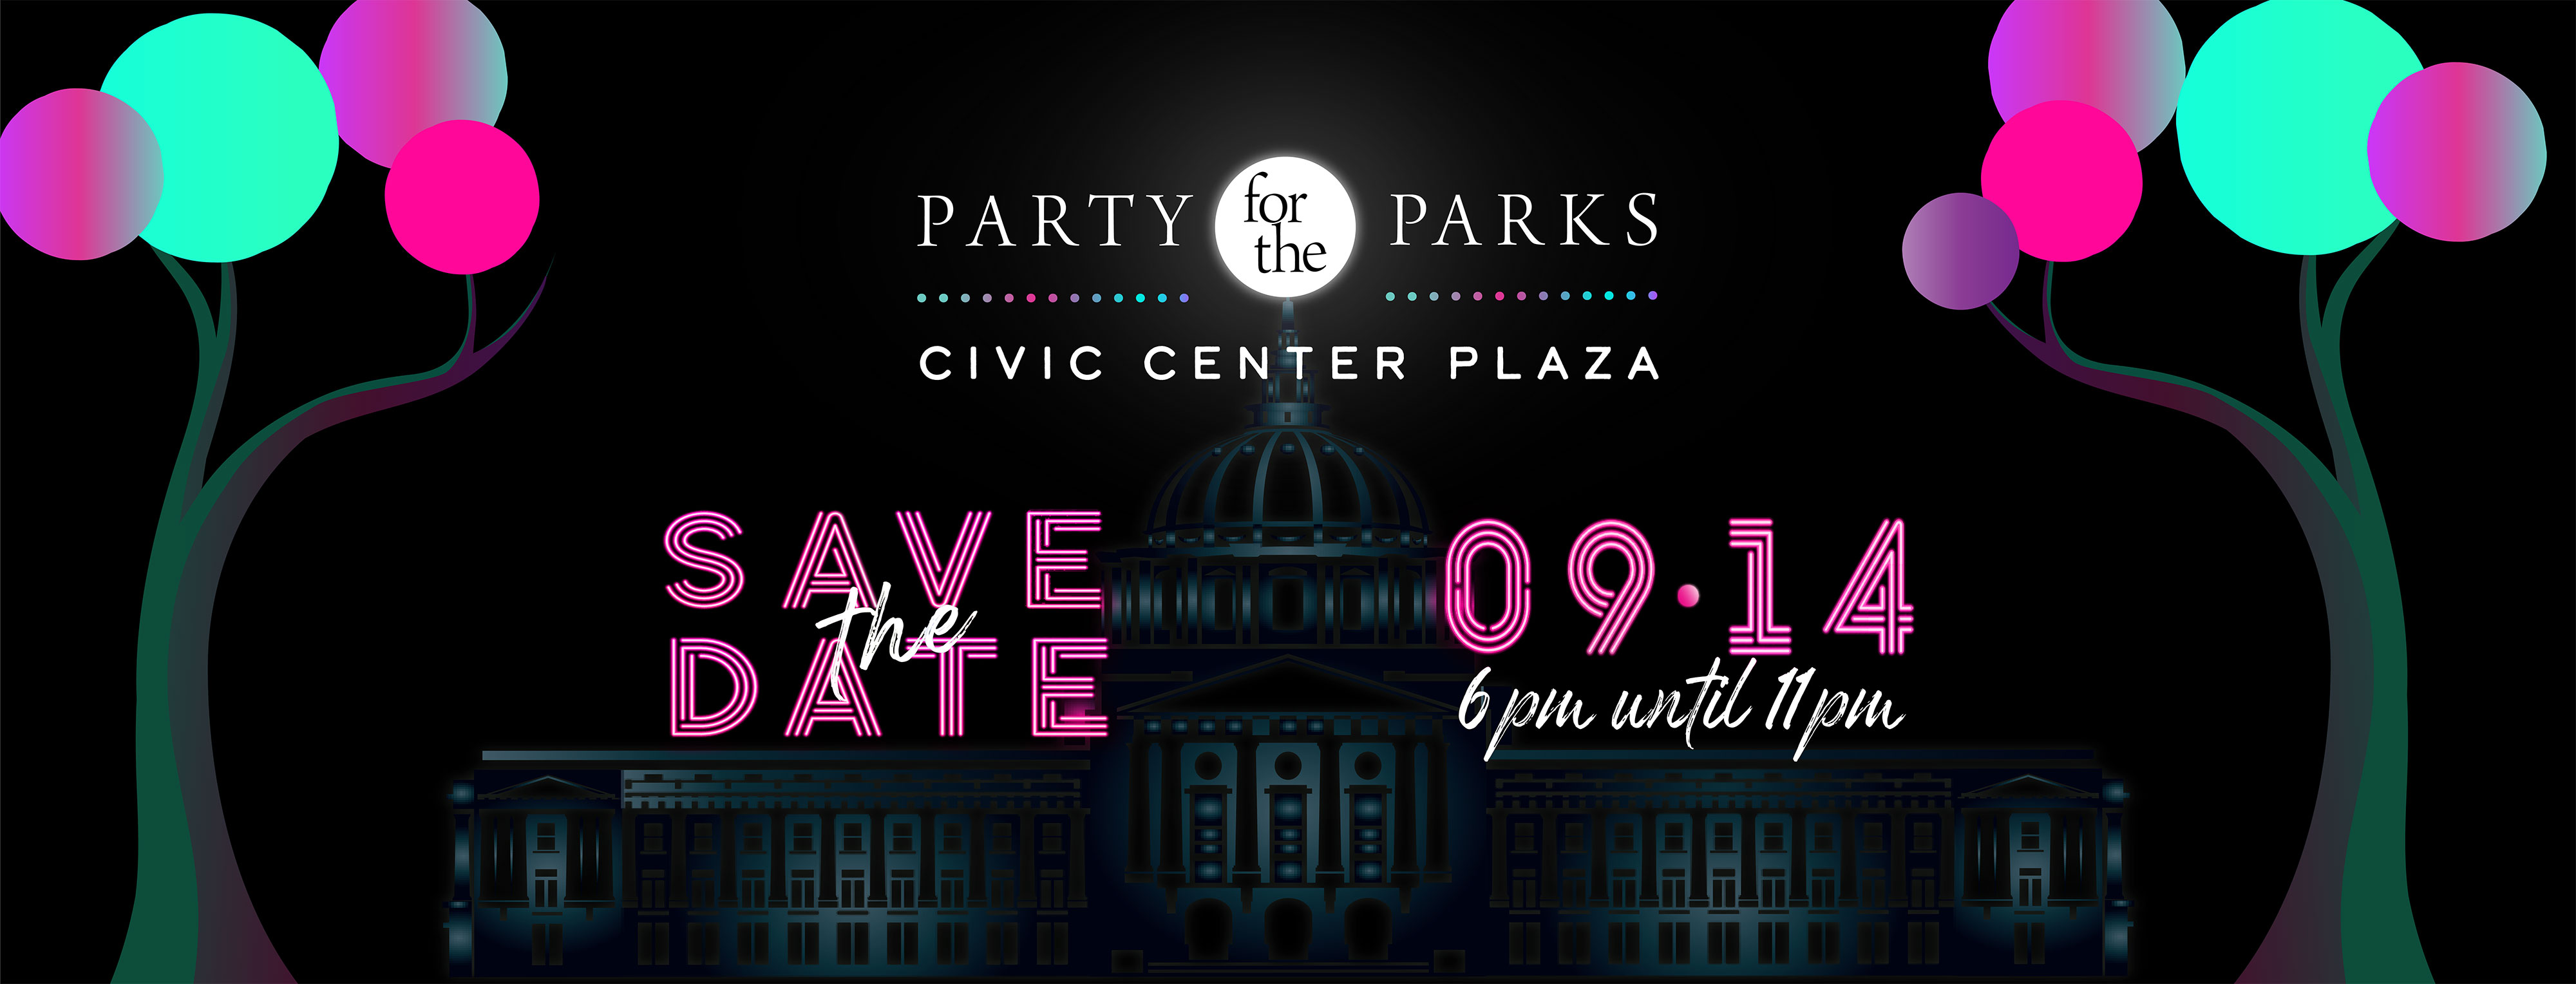 Party for the Parks - Save the Date